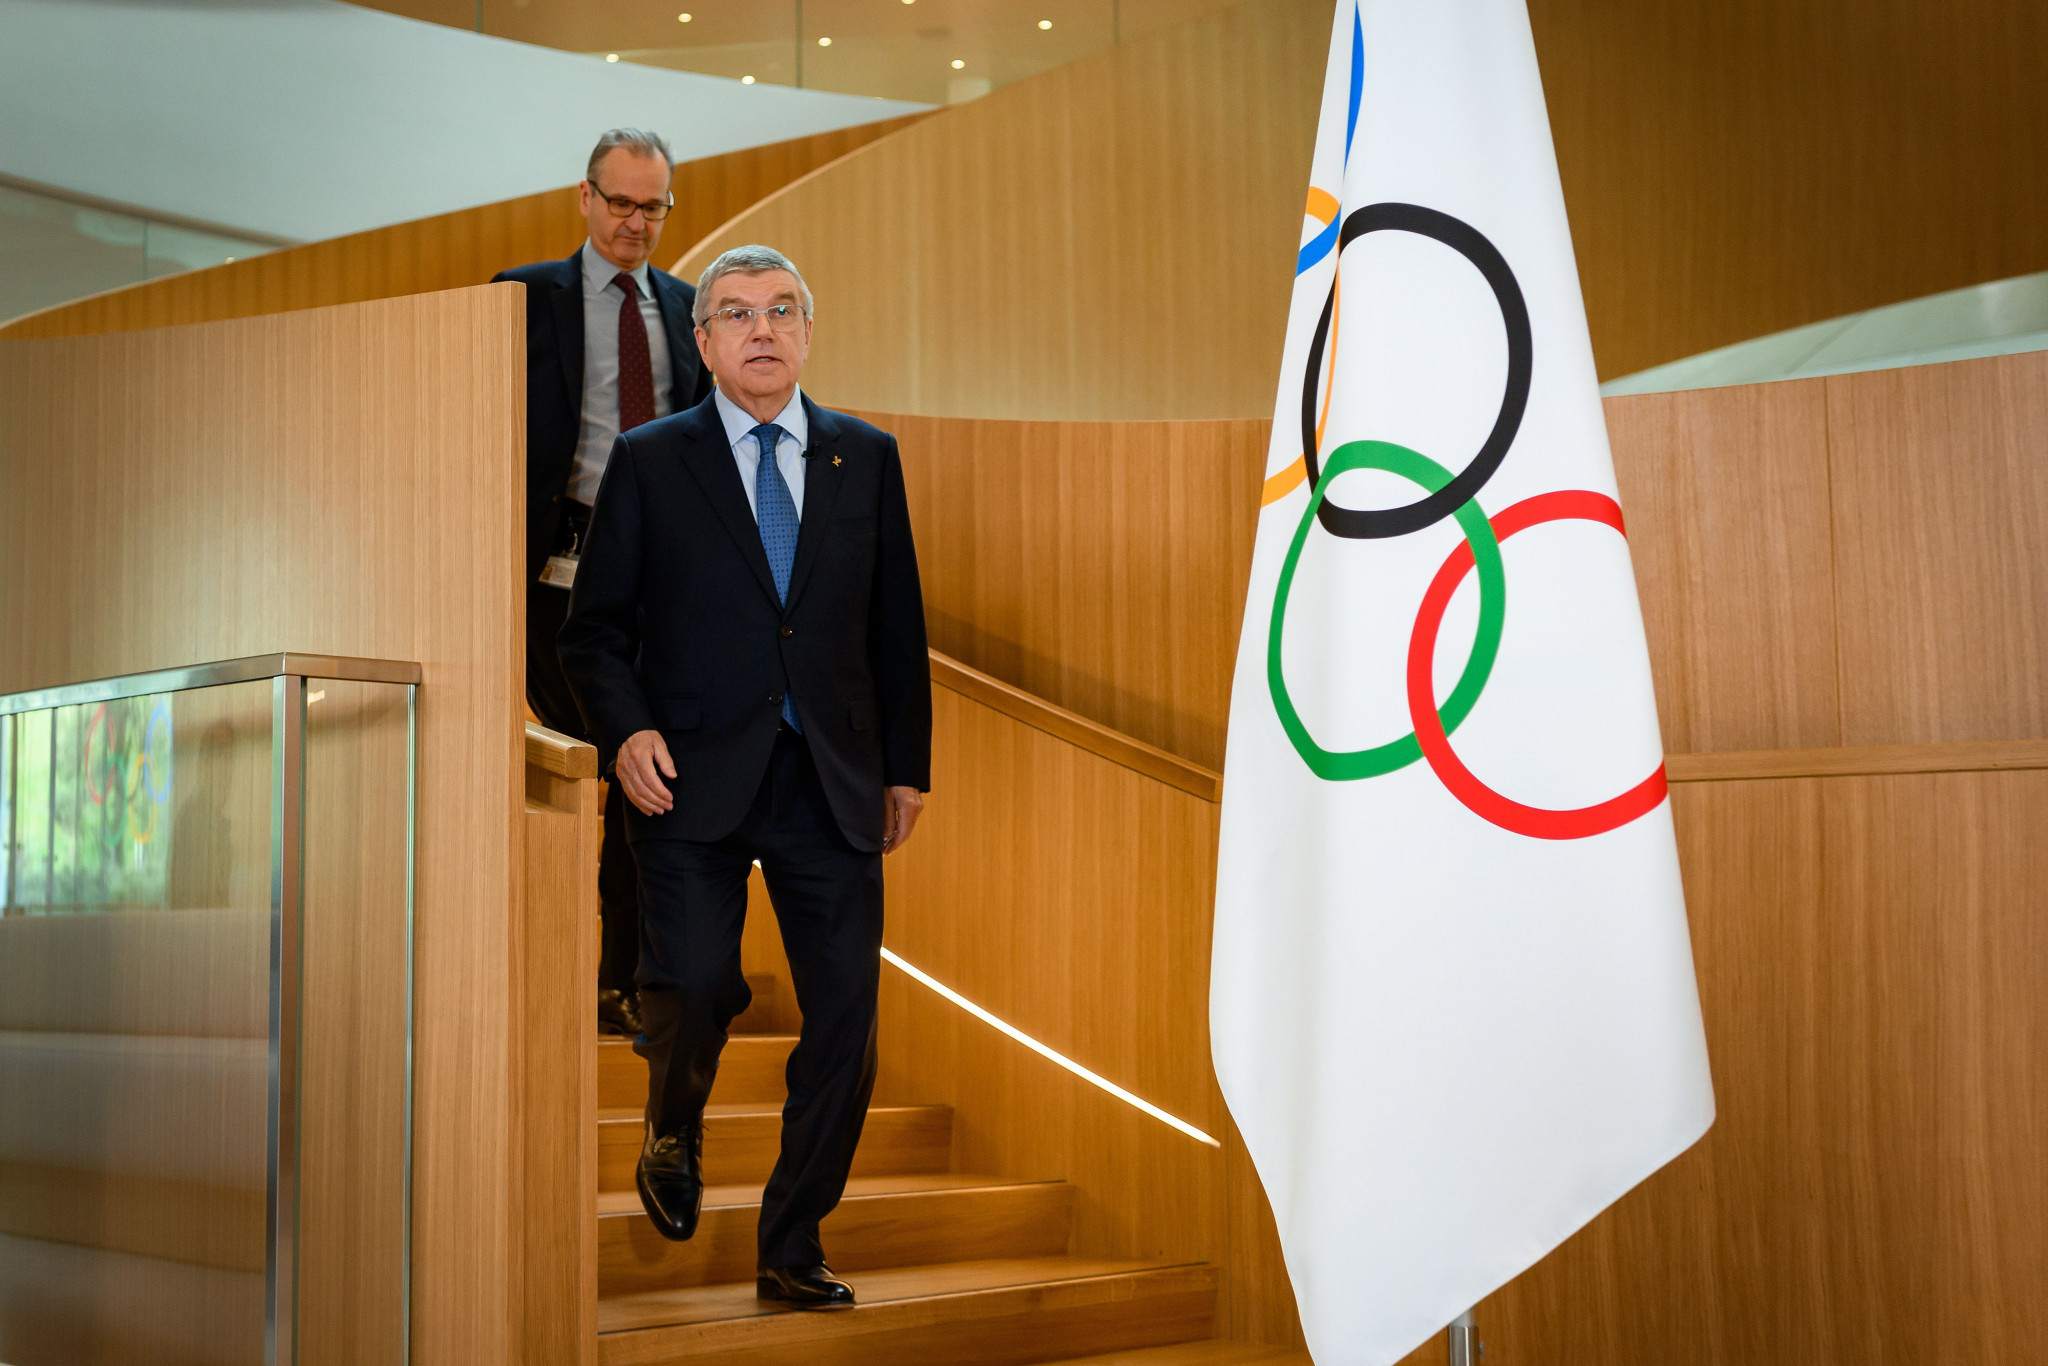 IOC President Thomas Bach has offered reassurances about the Games taking place as planned ©Getty Images